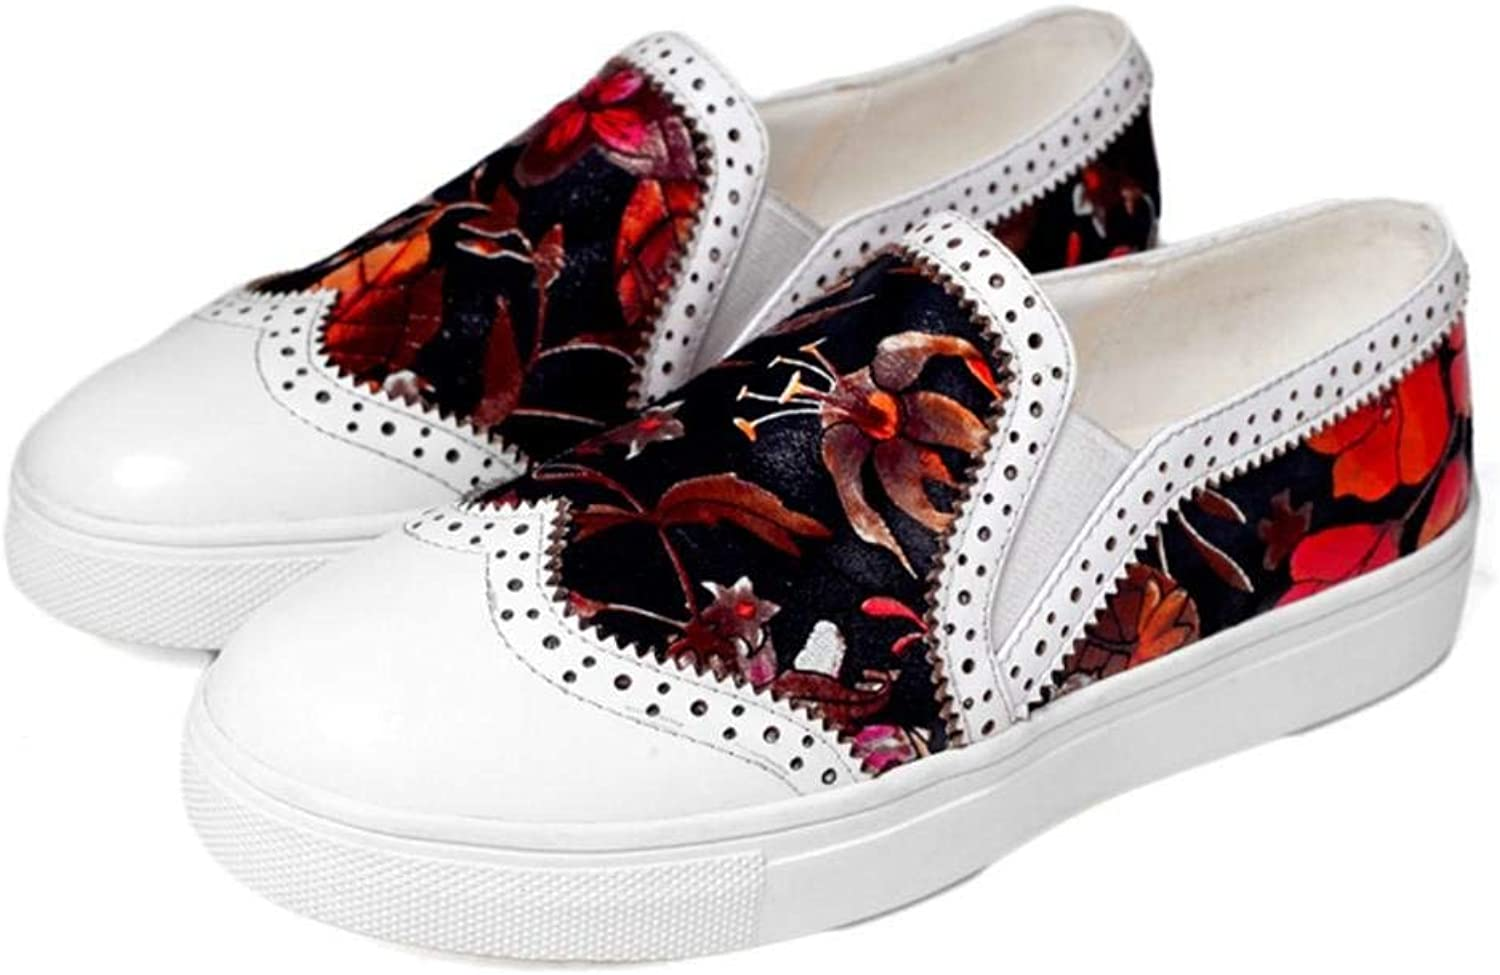 Lady Sport Spring Women's First Layer of Leather Flat Heel Round Head Deep Floral Printed Pattern Stylish Hipster Oudoor Universal Casual shoes